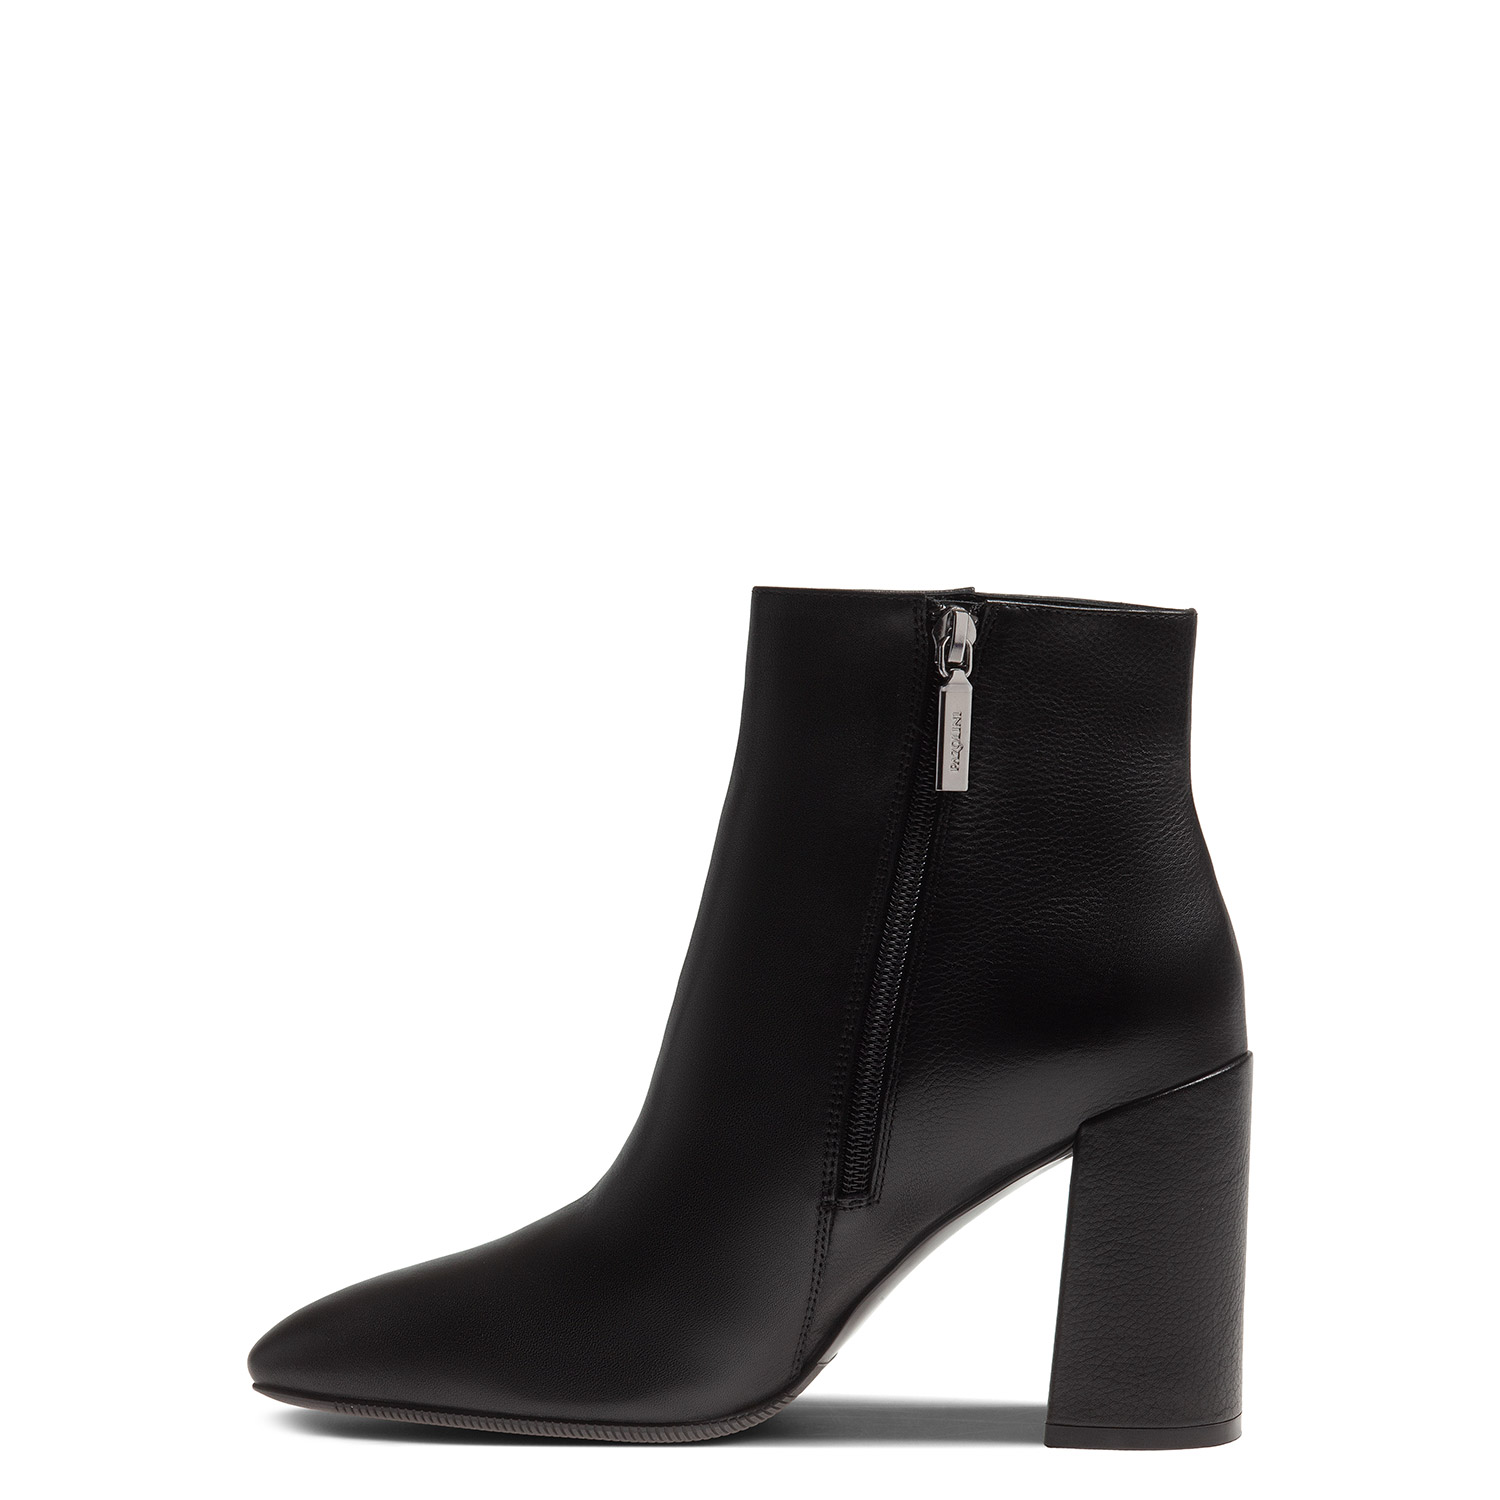 Women's ankle boots PAZOLINI FL-PGG6-1